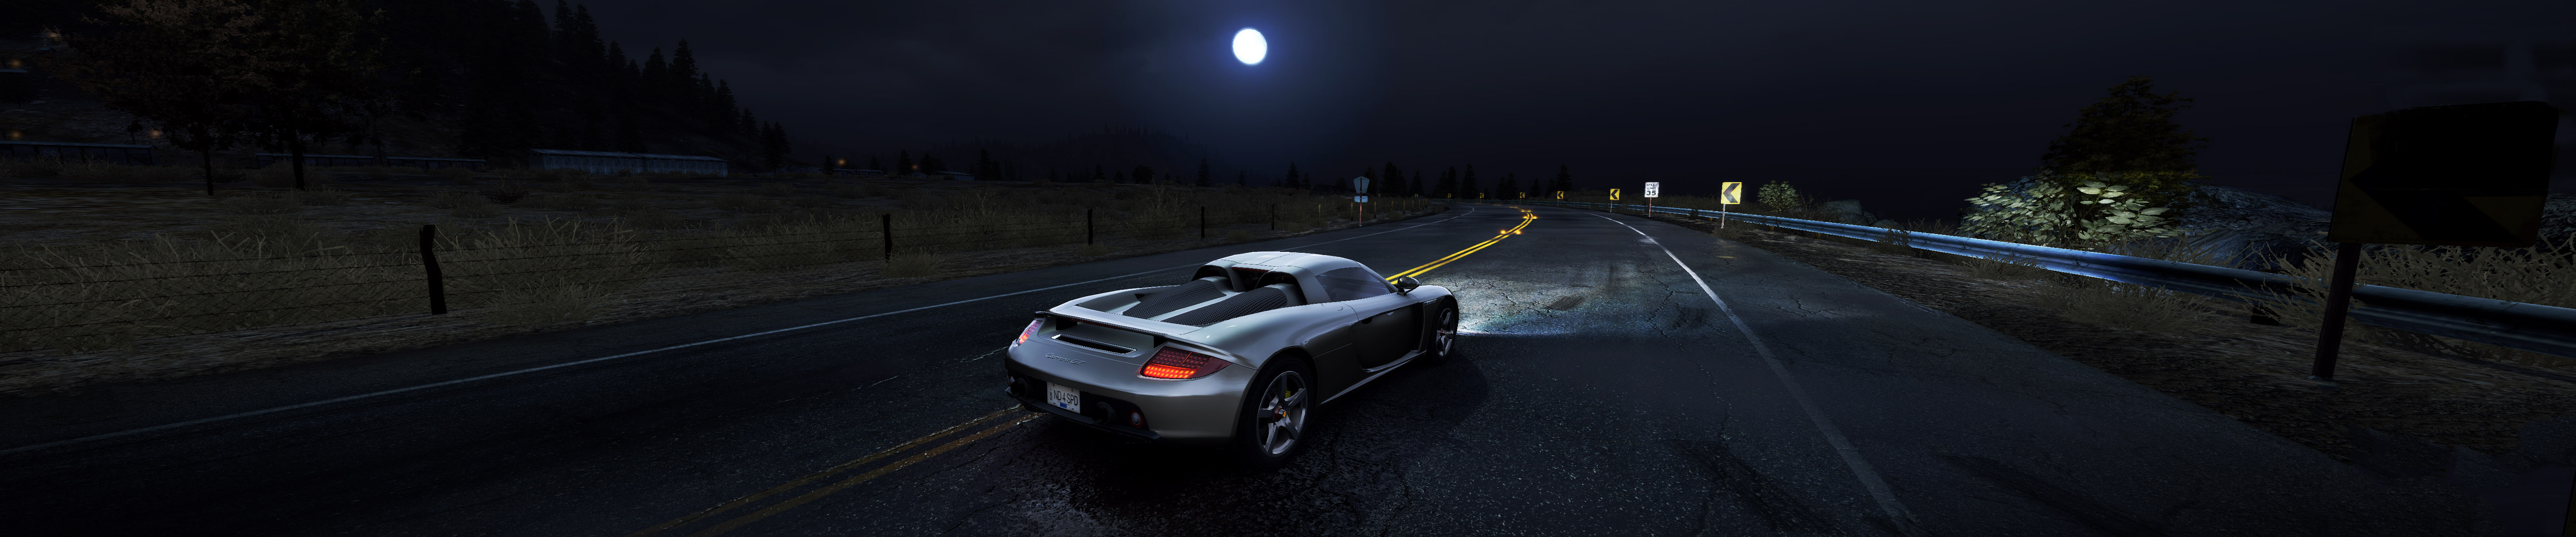 Car Dual Monitor Wallpaper 3840x1200 Video Game Full Hd Wallpaper And Background Image